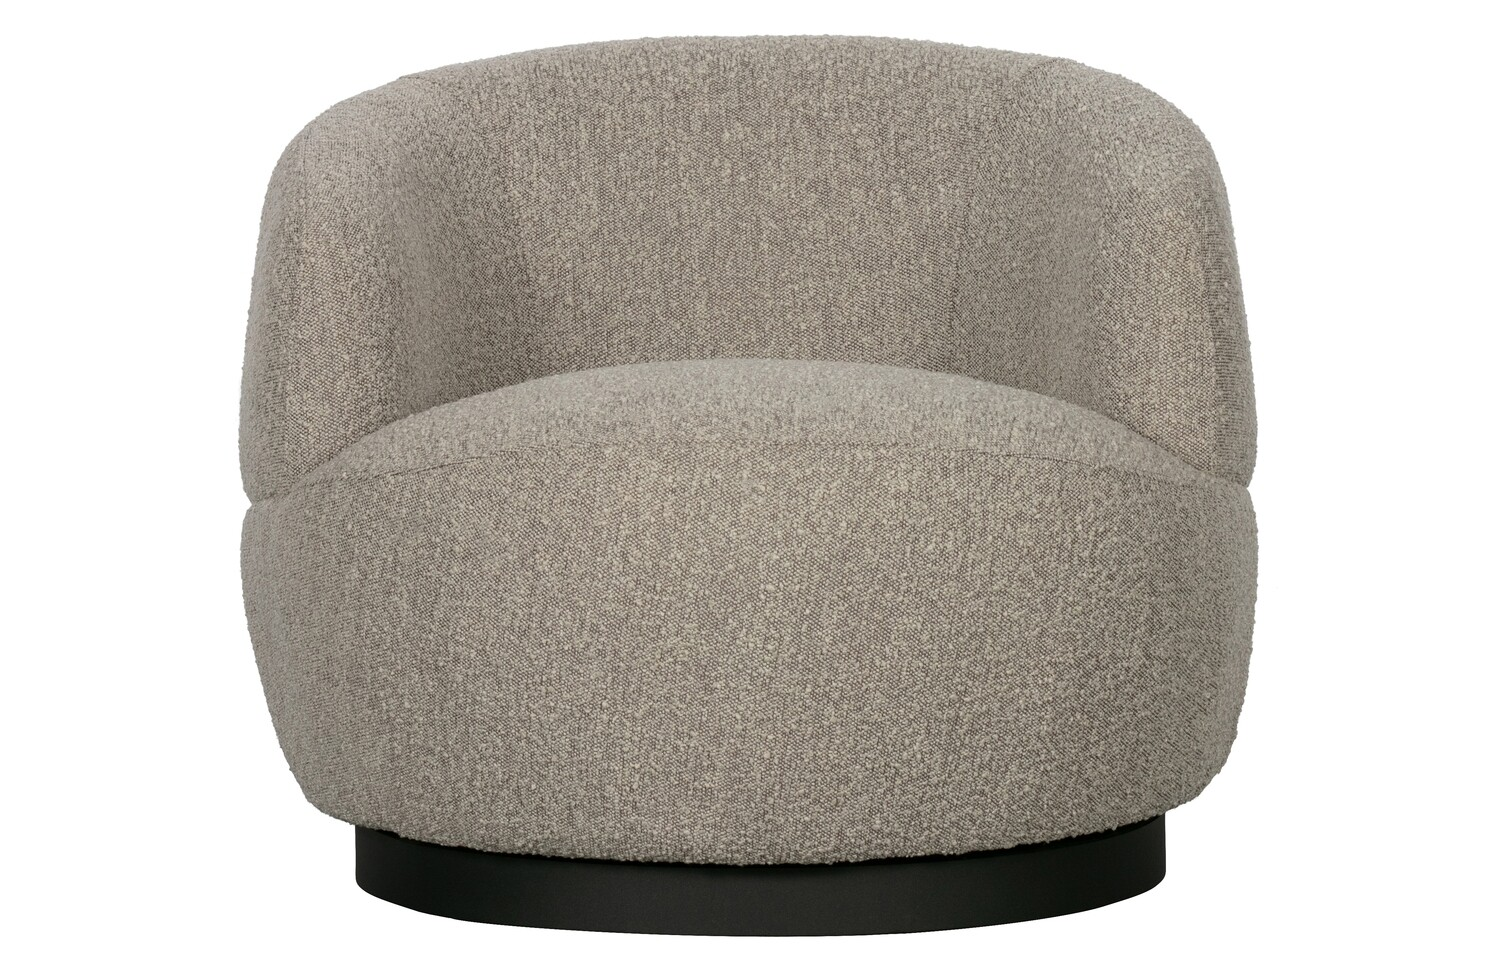 Woolly rotation armchair natural mix